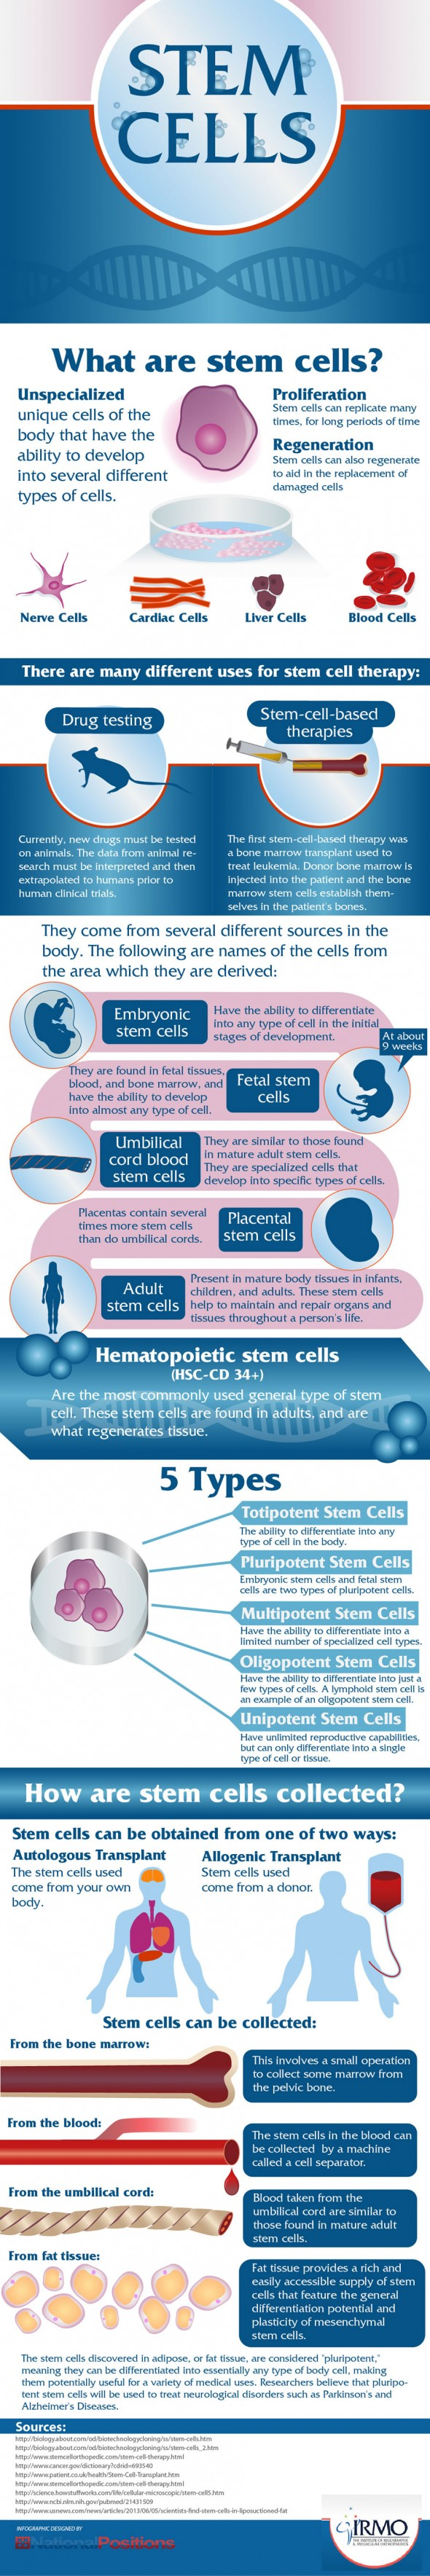 stem-cells-infographic-590x3536